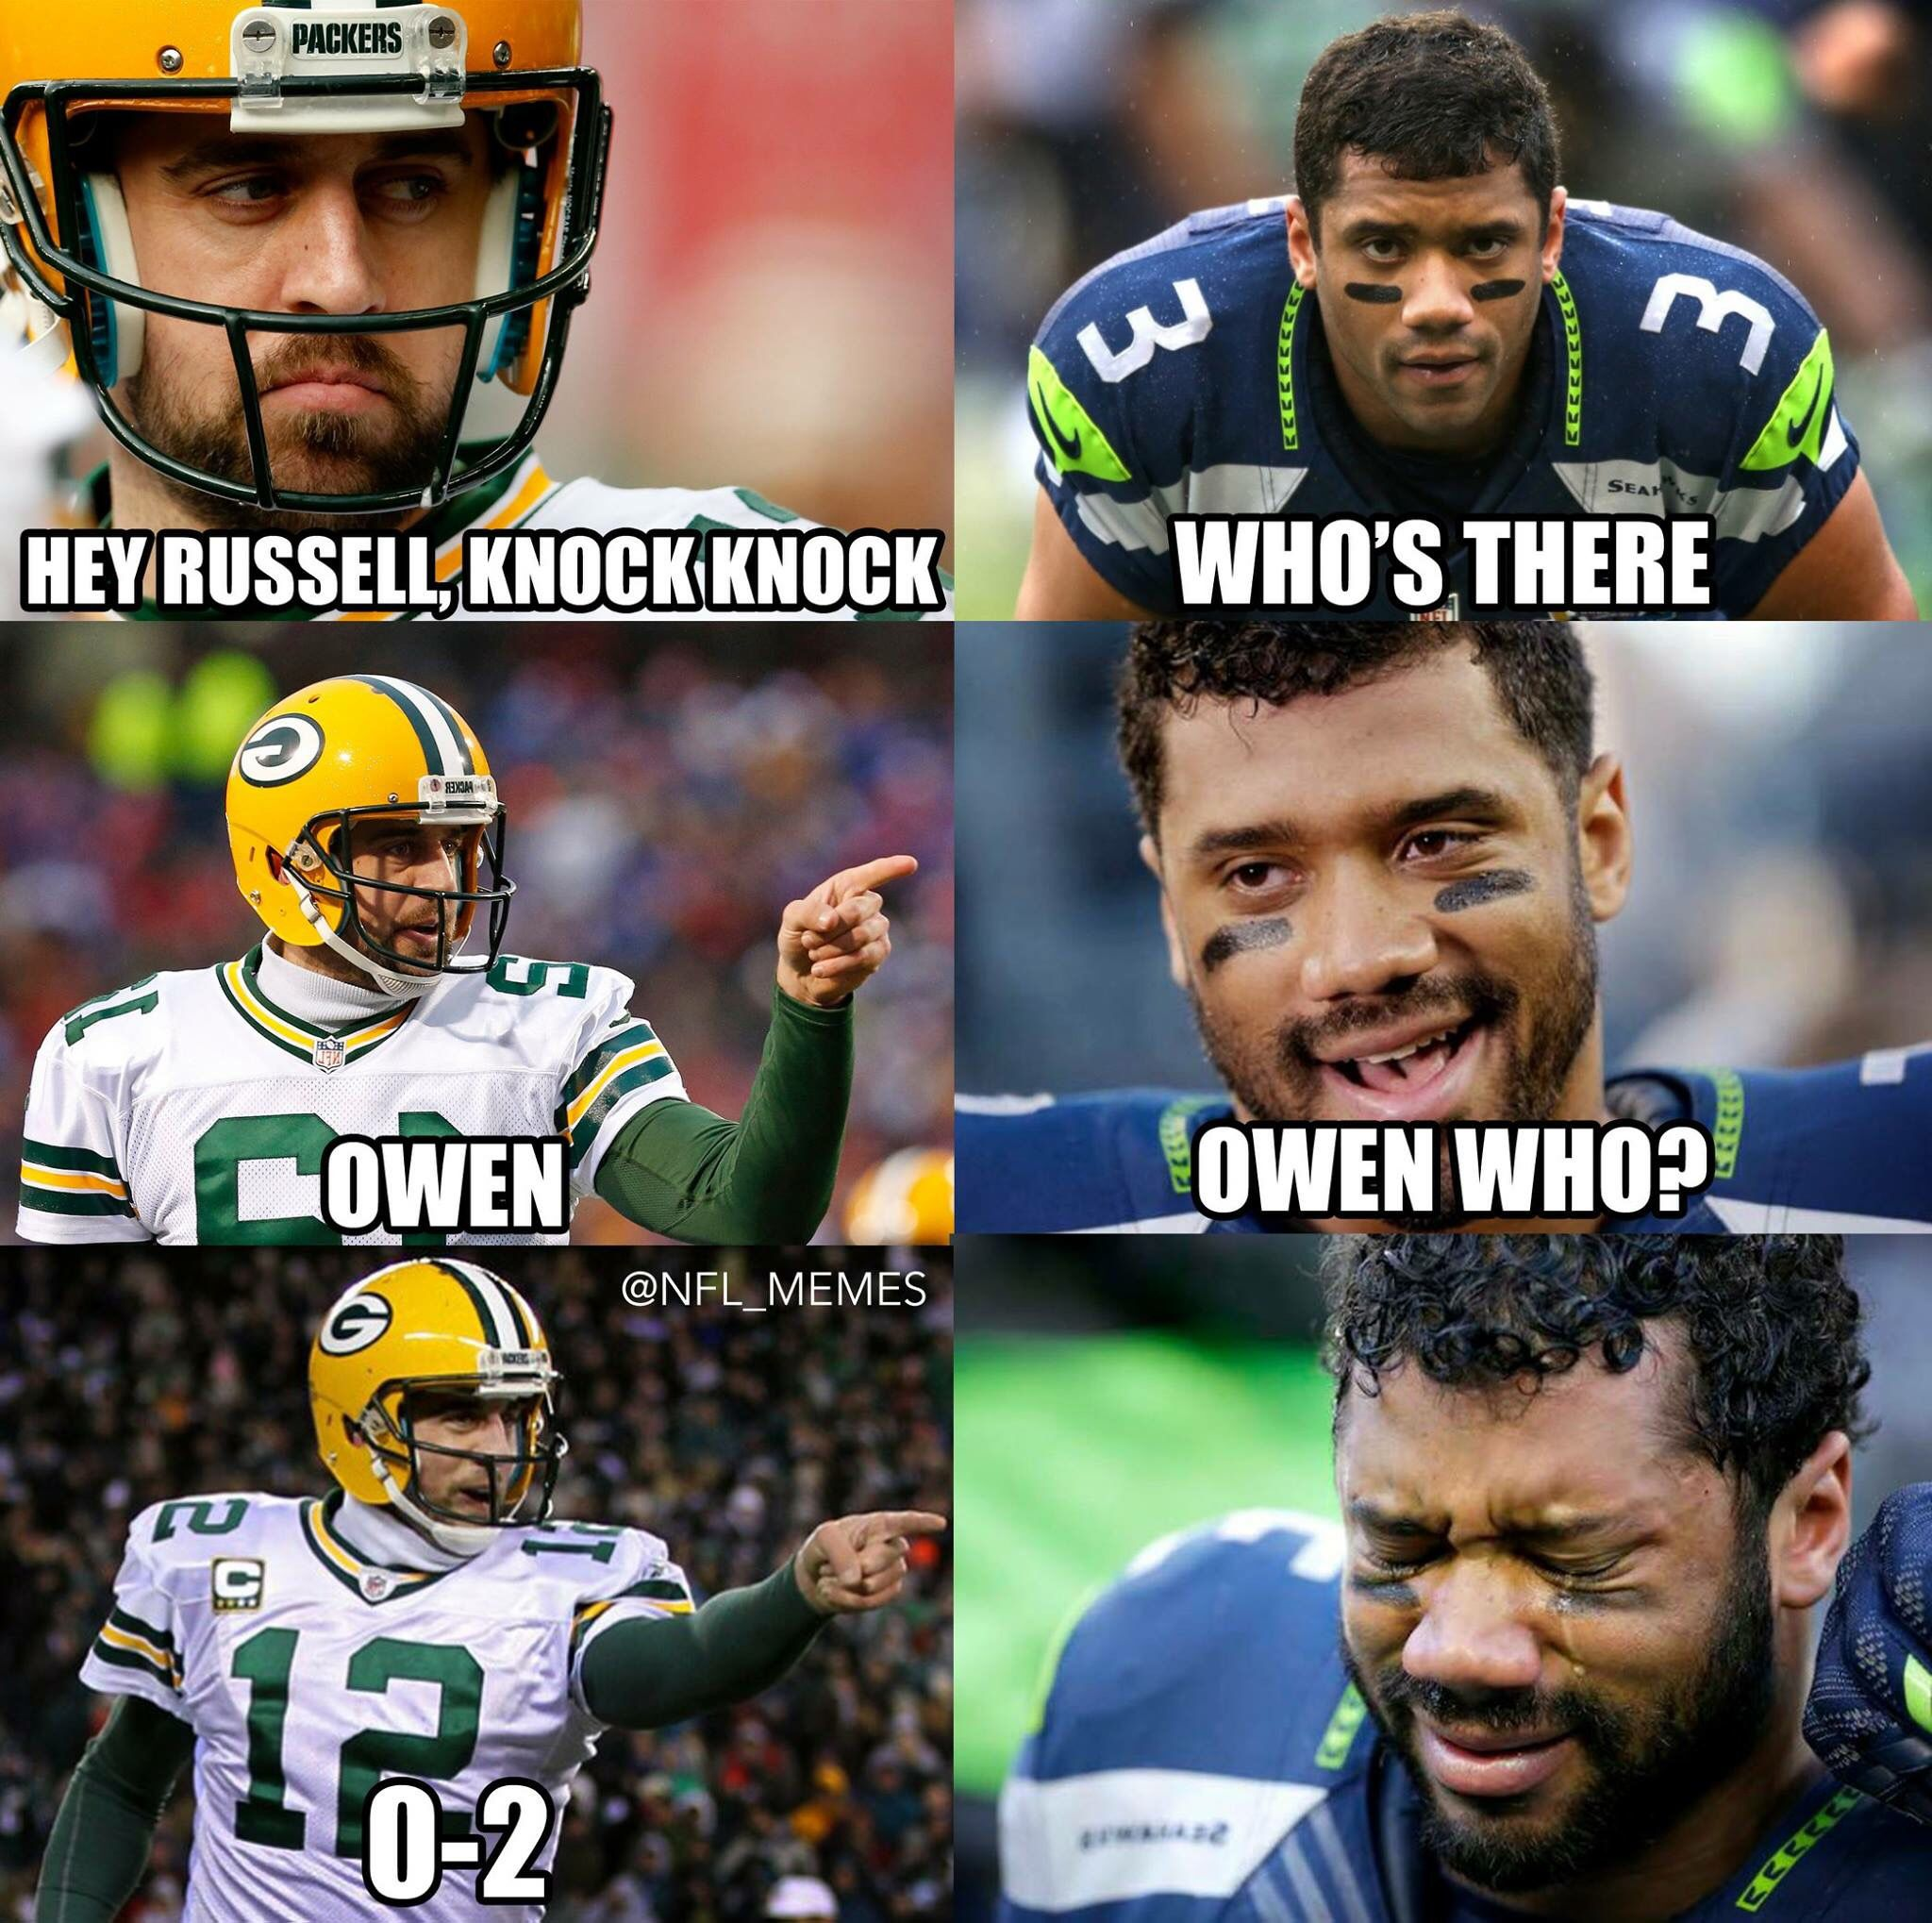 Russell Wilson And Aaron Rodgers Nfl Memes Funny Funny Football Memes Nfl Jokes